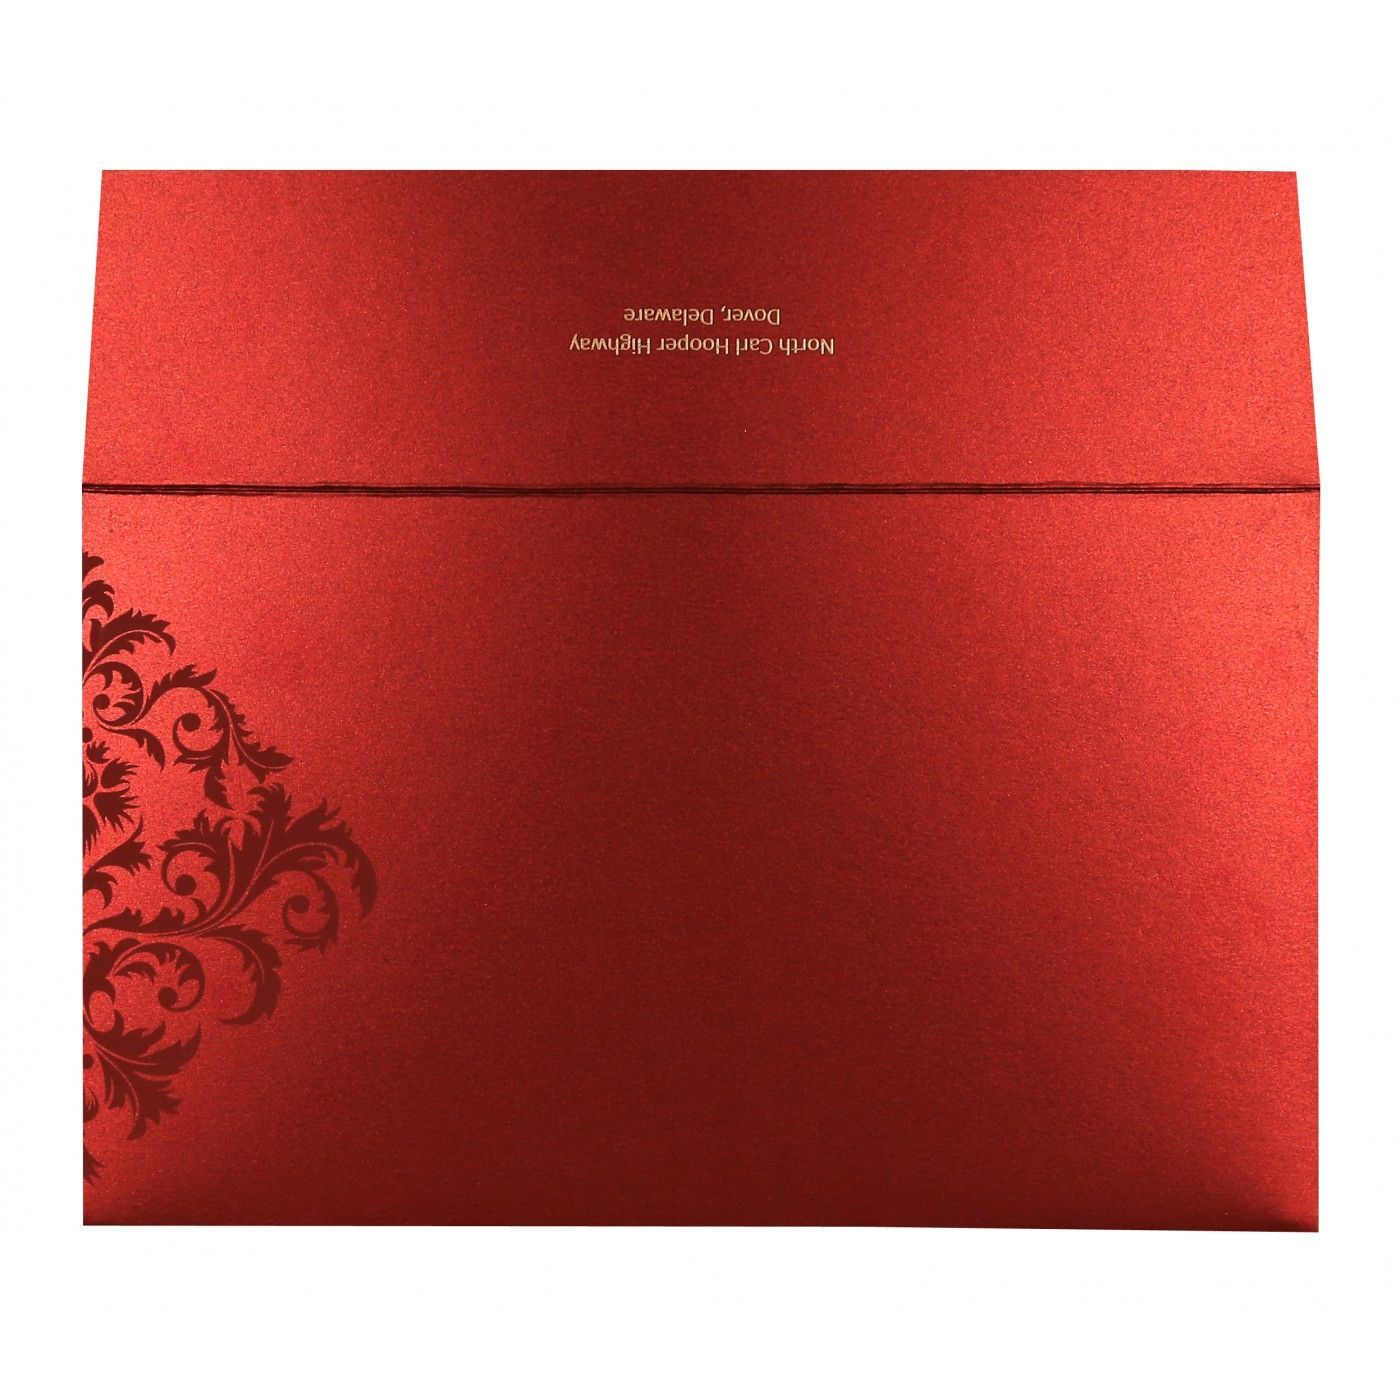 MODERATE RED SHIMMERY DAMASK THEMED - SCREEN PRINTED WEDDING CARD : CW-8257H - IndianWeddingCards